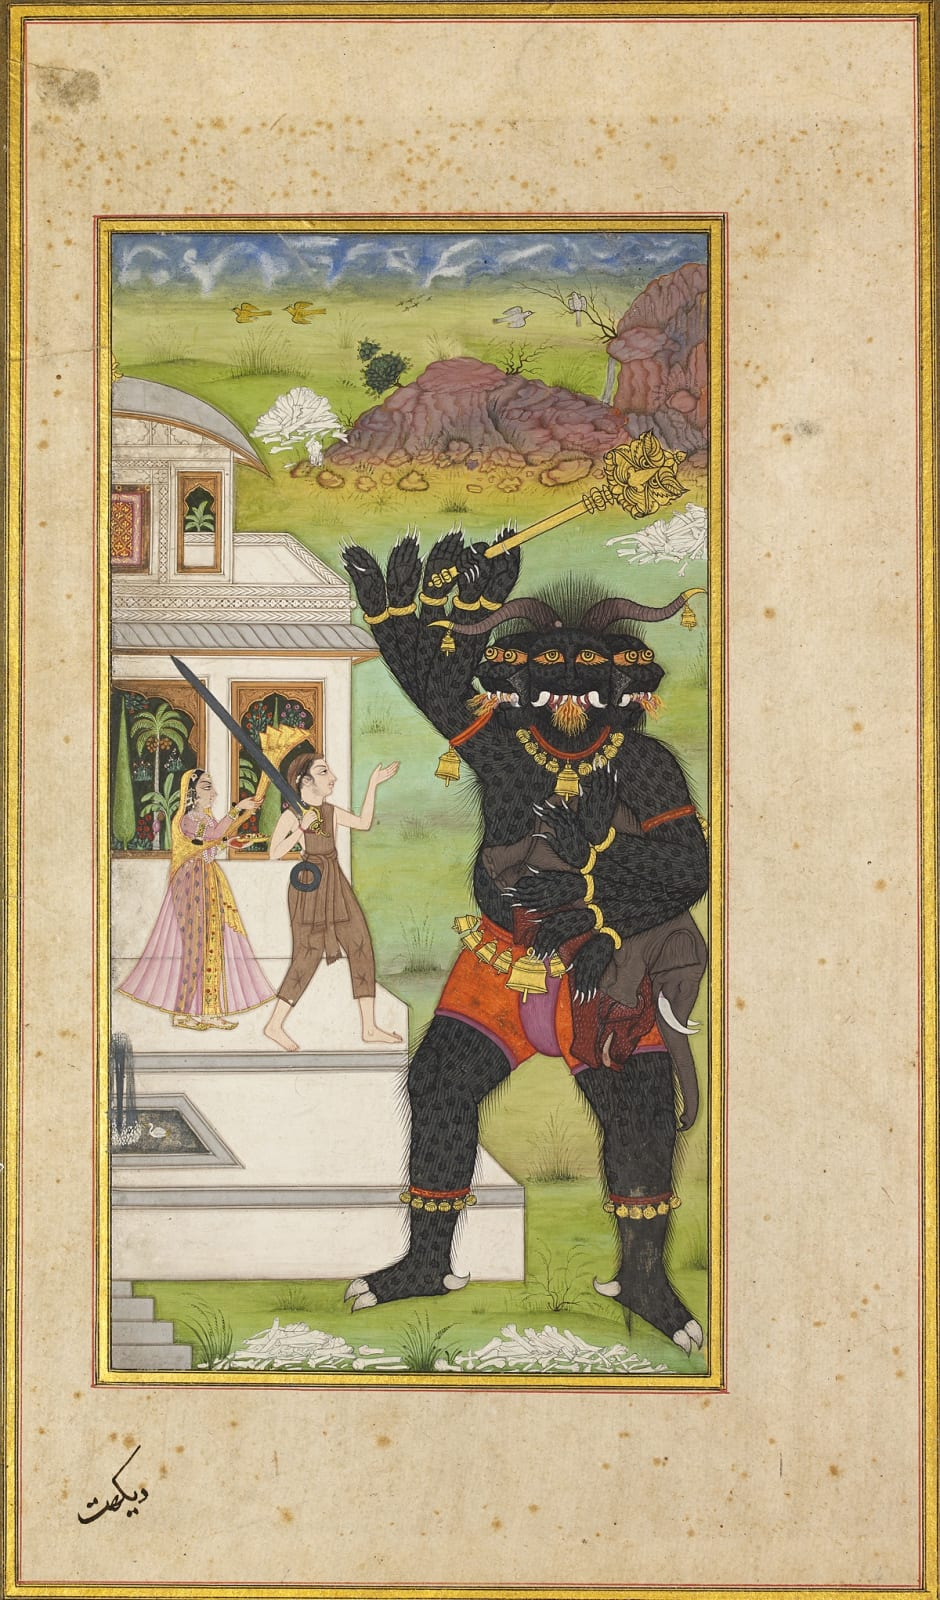 Prince Manhar protects the Princess Champavati and confronts the Demon, Page from a Deccani Urdu poem, the Gulshan-i 'Ishq by Nusrati, Deccan, c. 1700